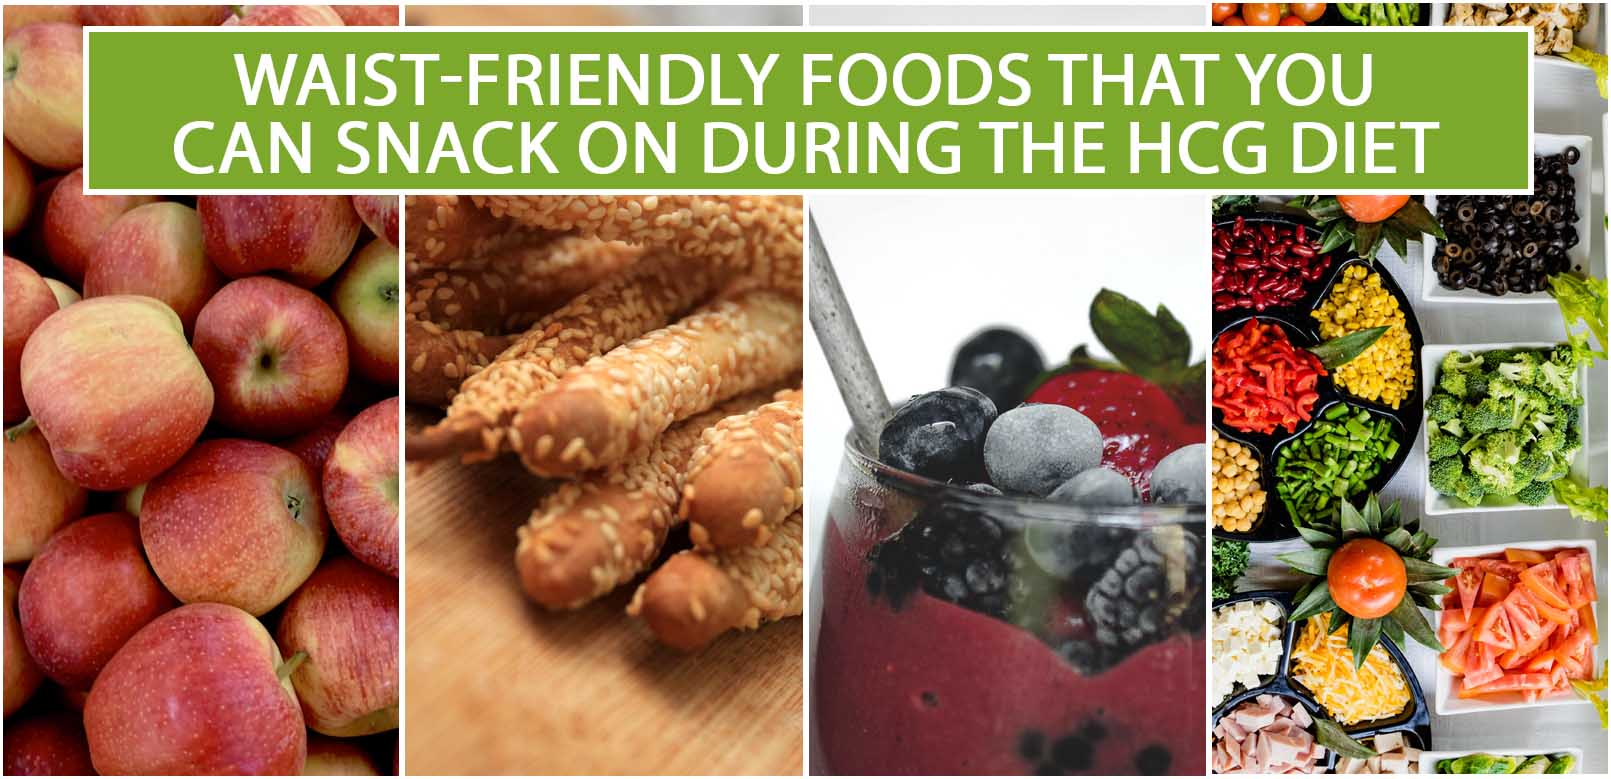 WAIST-FRIENDLY FOODS THAT YOU CAN SNACK ON DURING THE HCG DIET